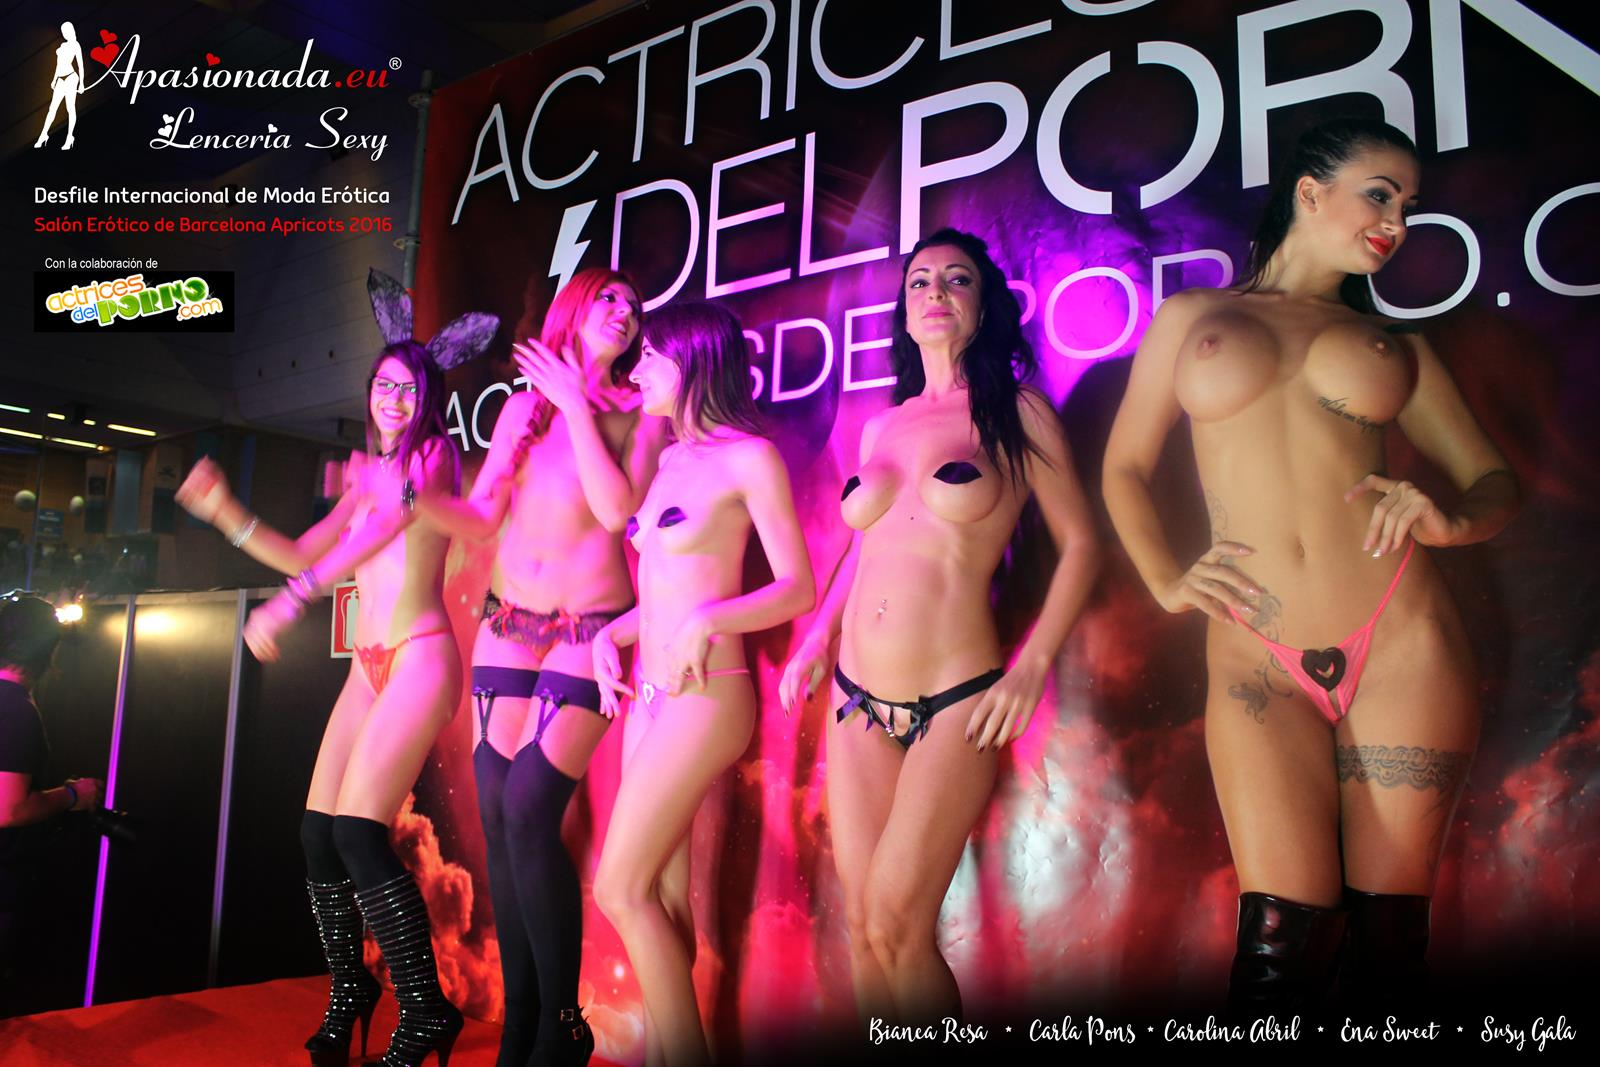 Julia de lucia jesyka diamond y natassia dreams feda 2013 - 2 part 9